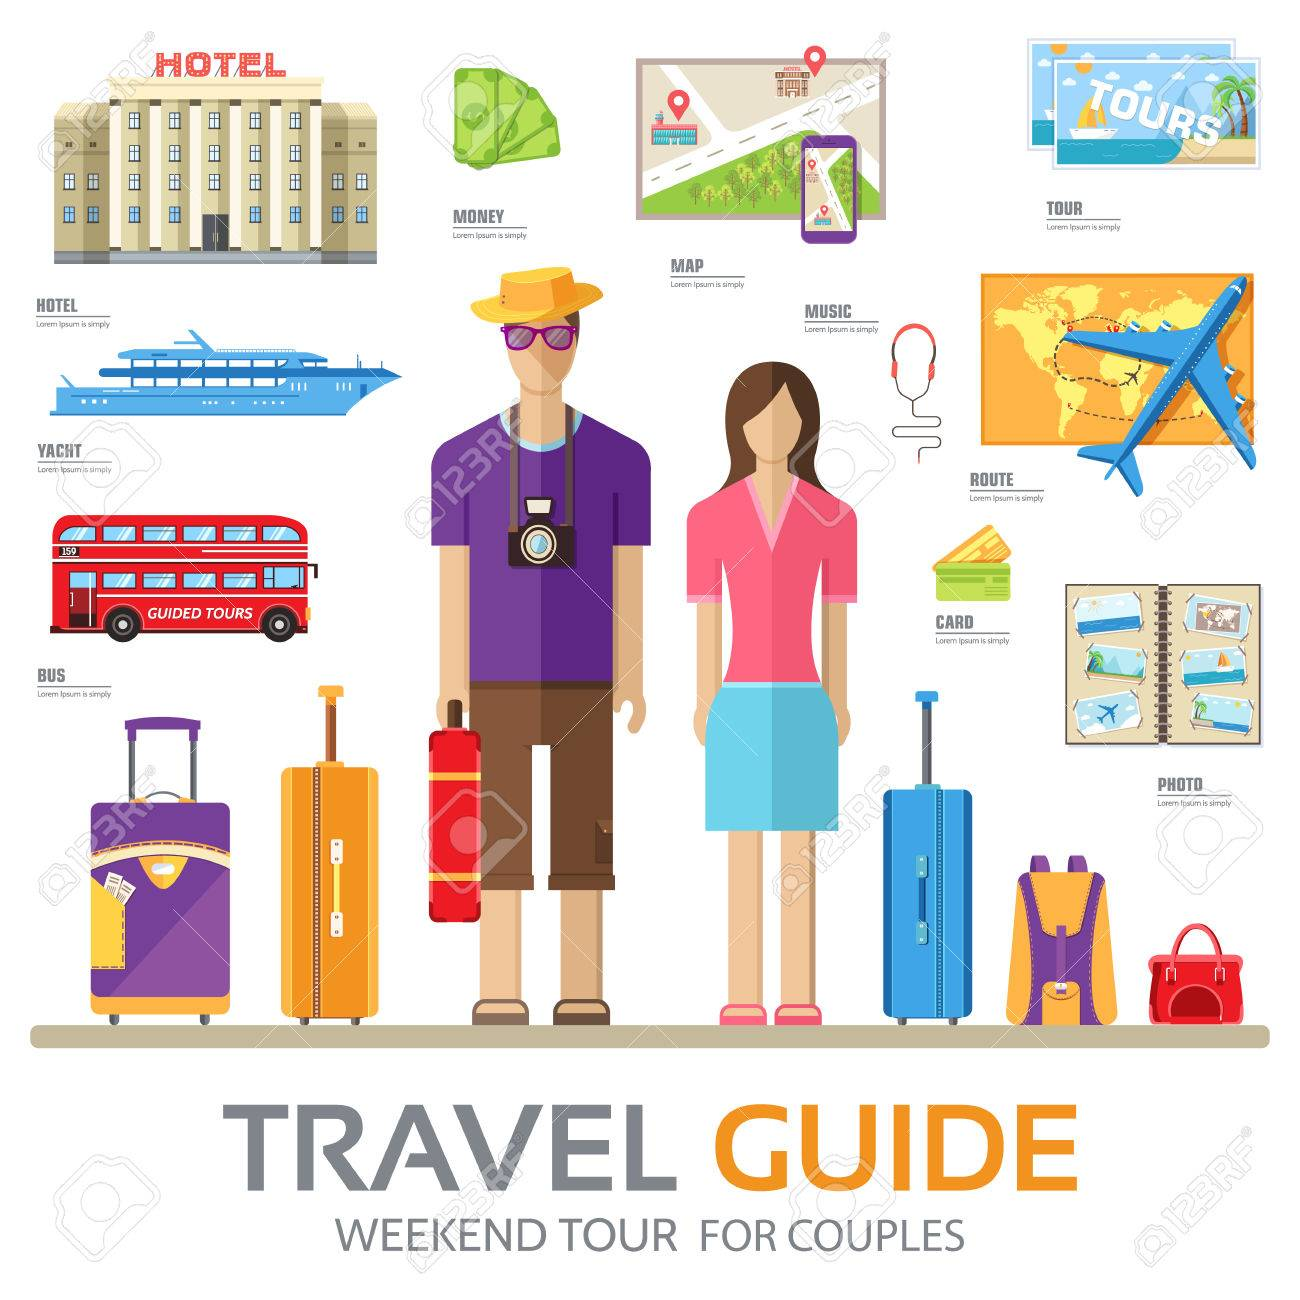 Travel Guide Infographic With Vacation Tour Locations And Items